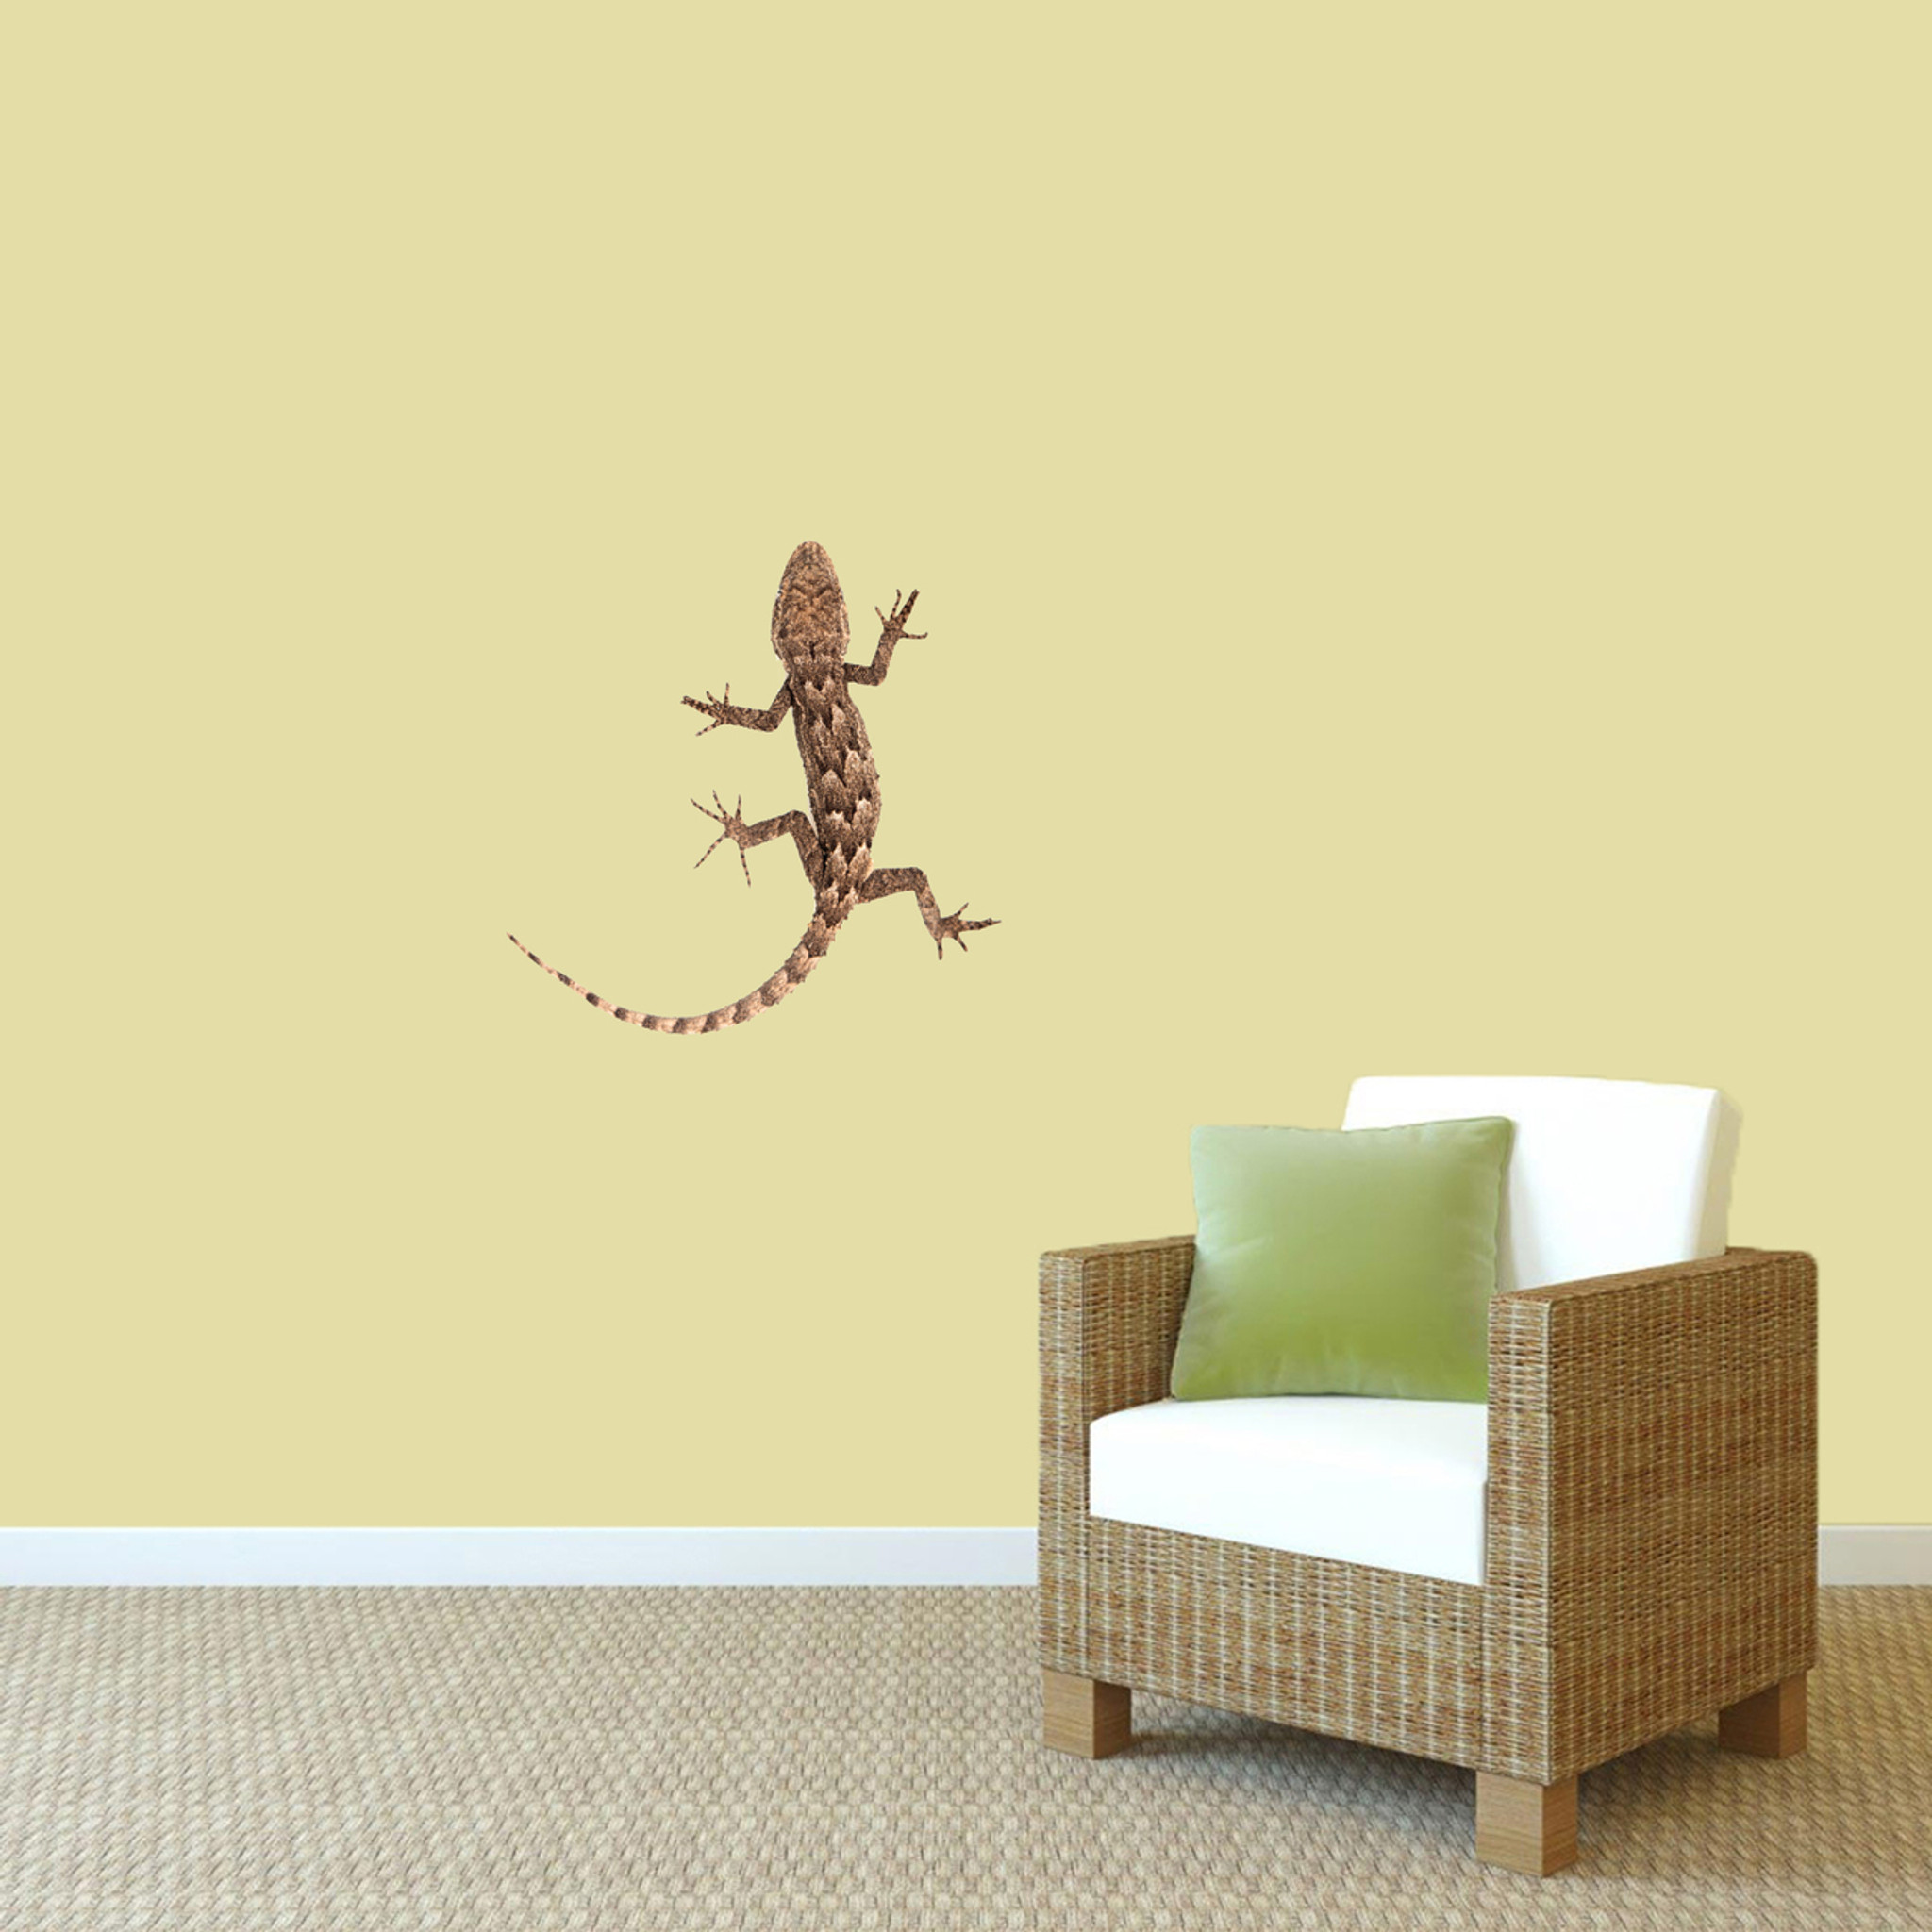 Real Life Lizard Printed Wall Decal Home Décor Wall Decals